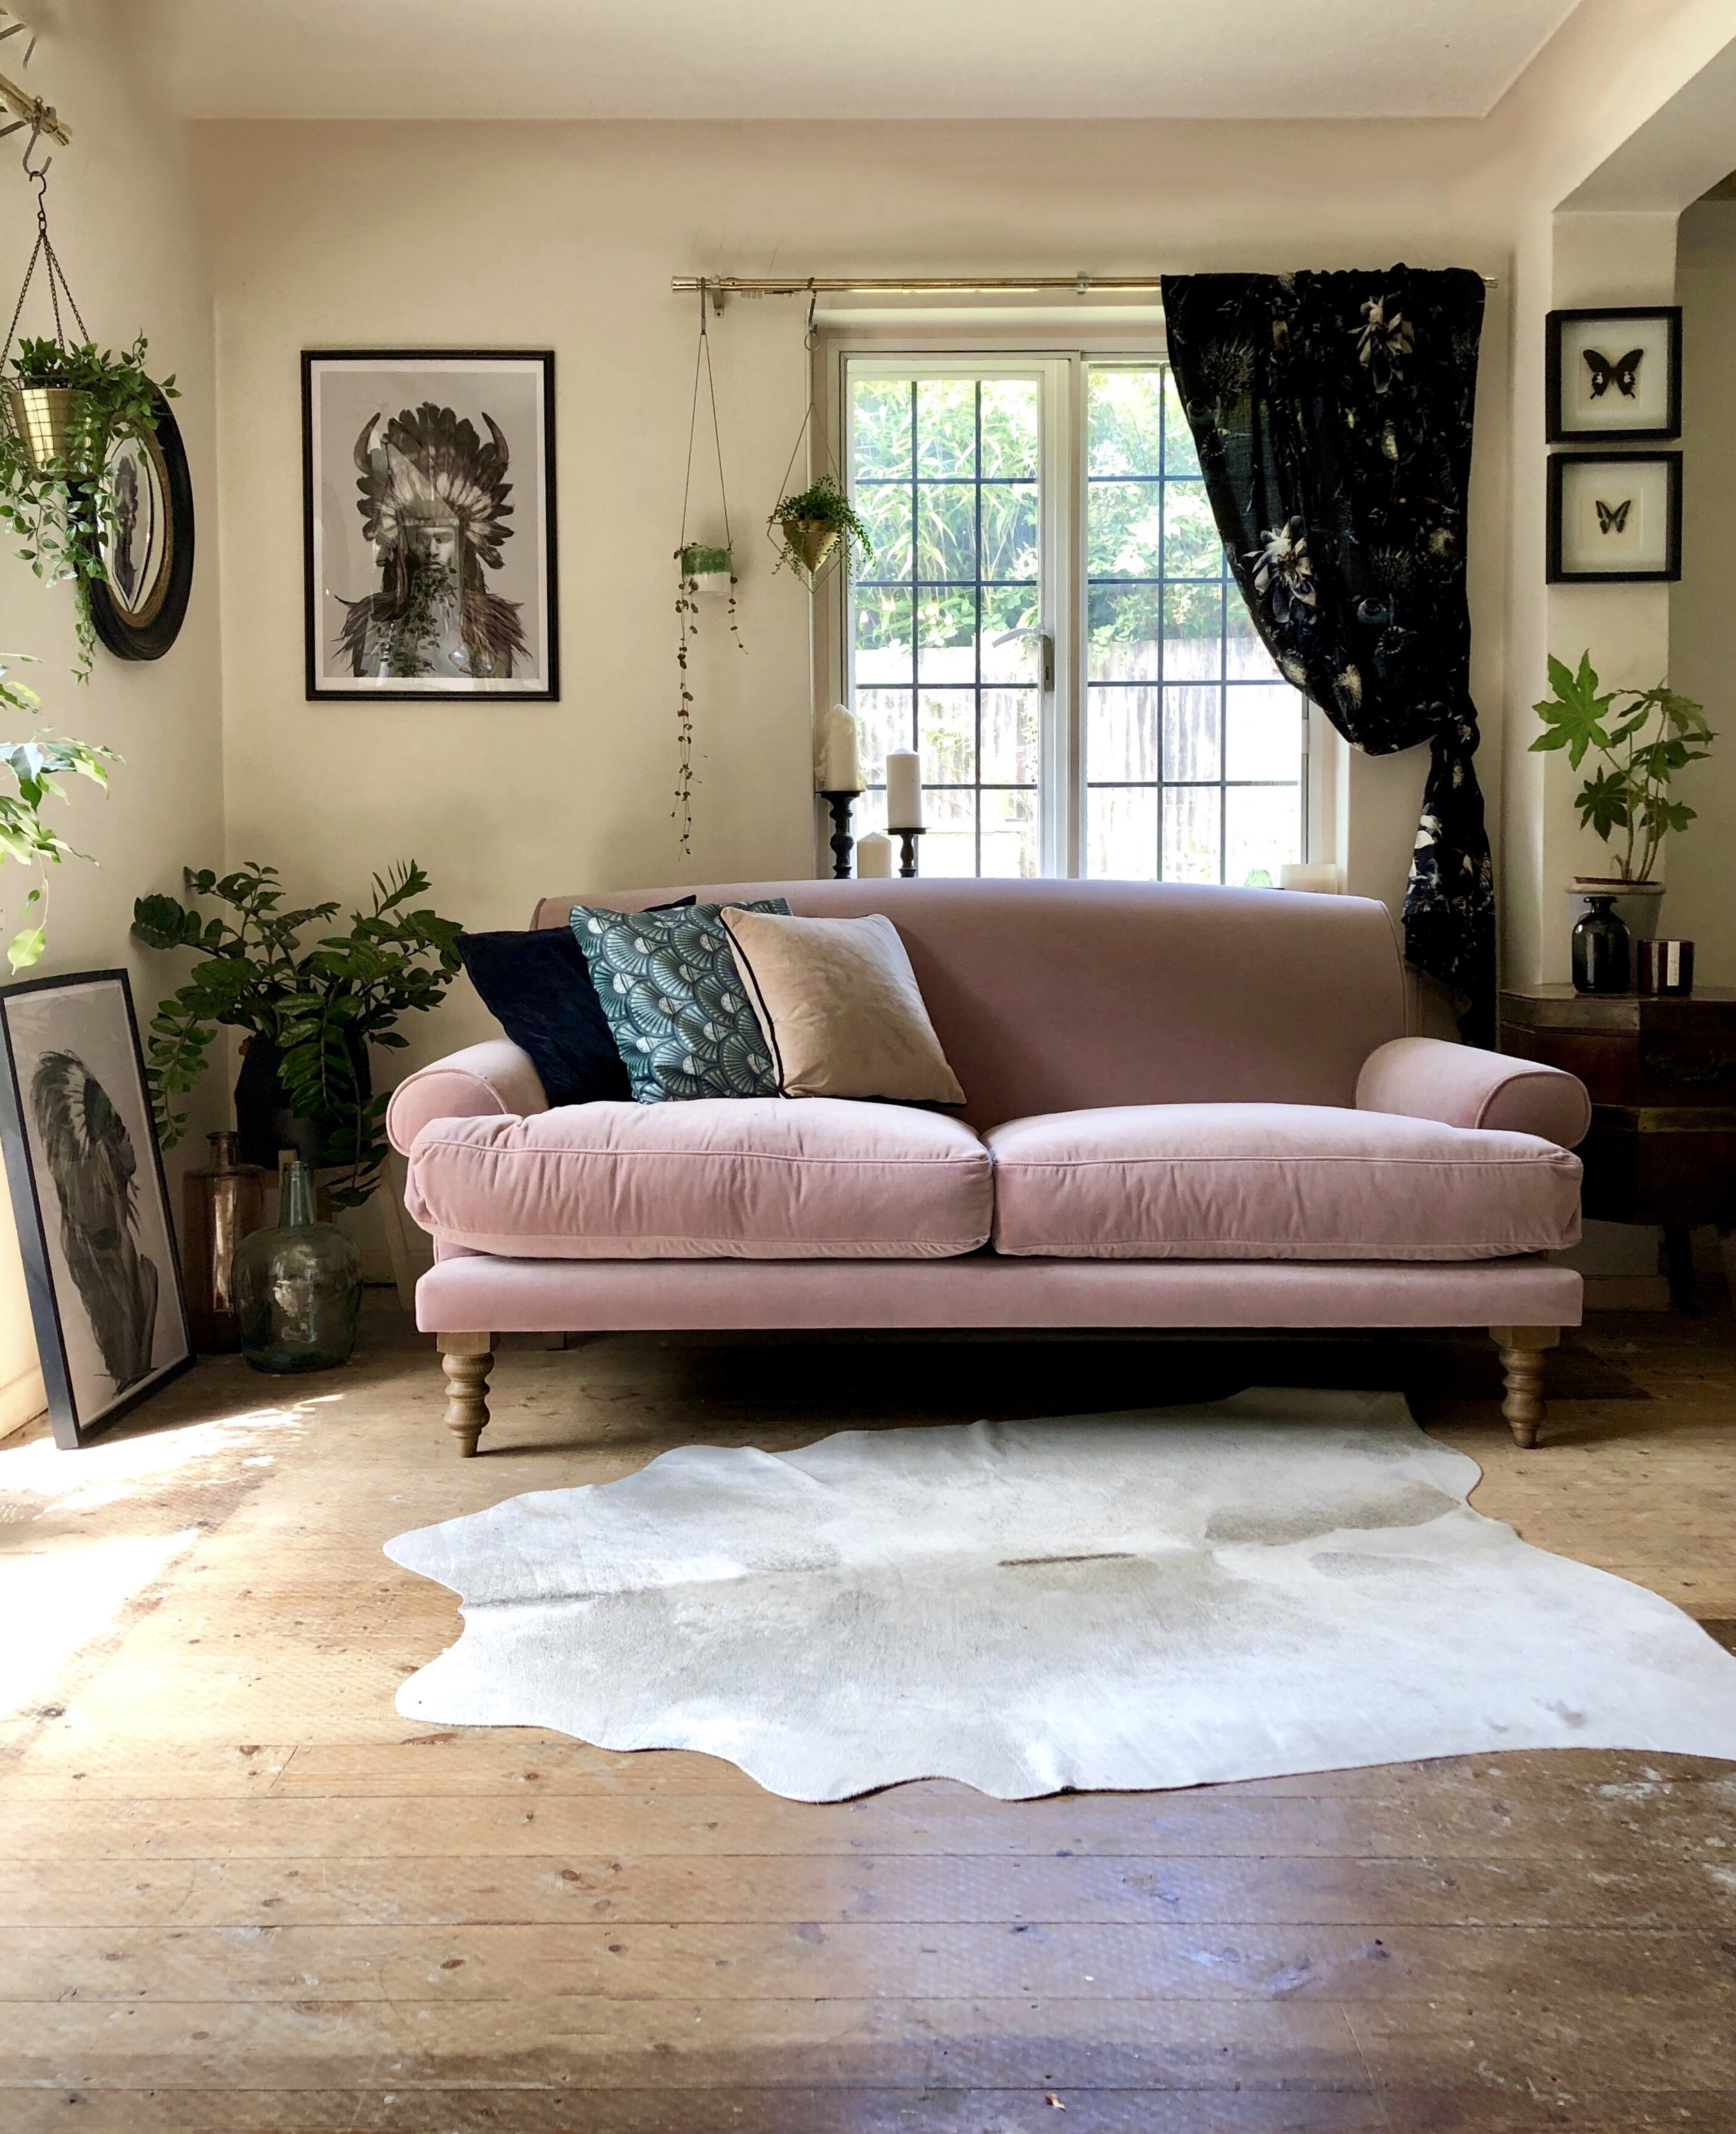 The pink sofa really stands out against the darker accessories…..